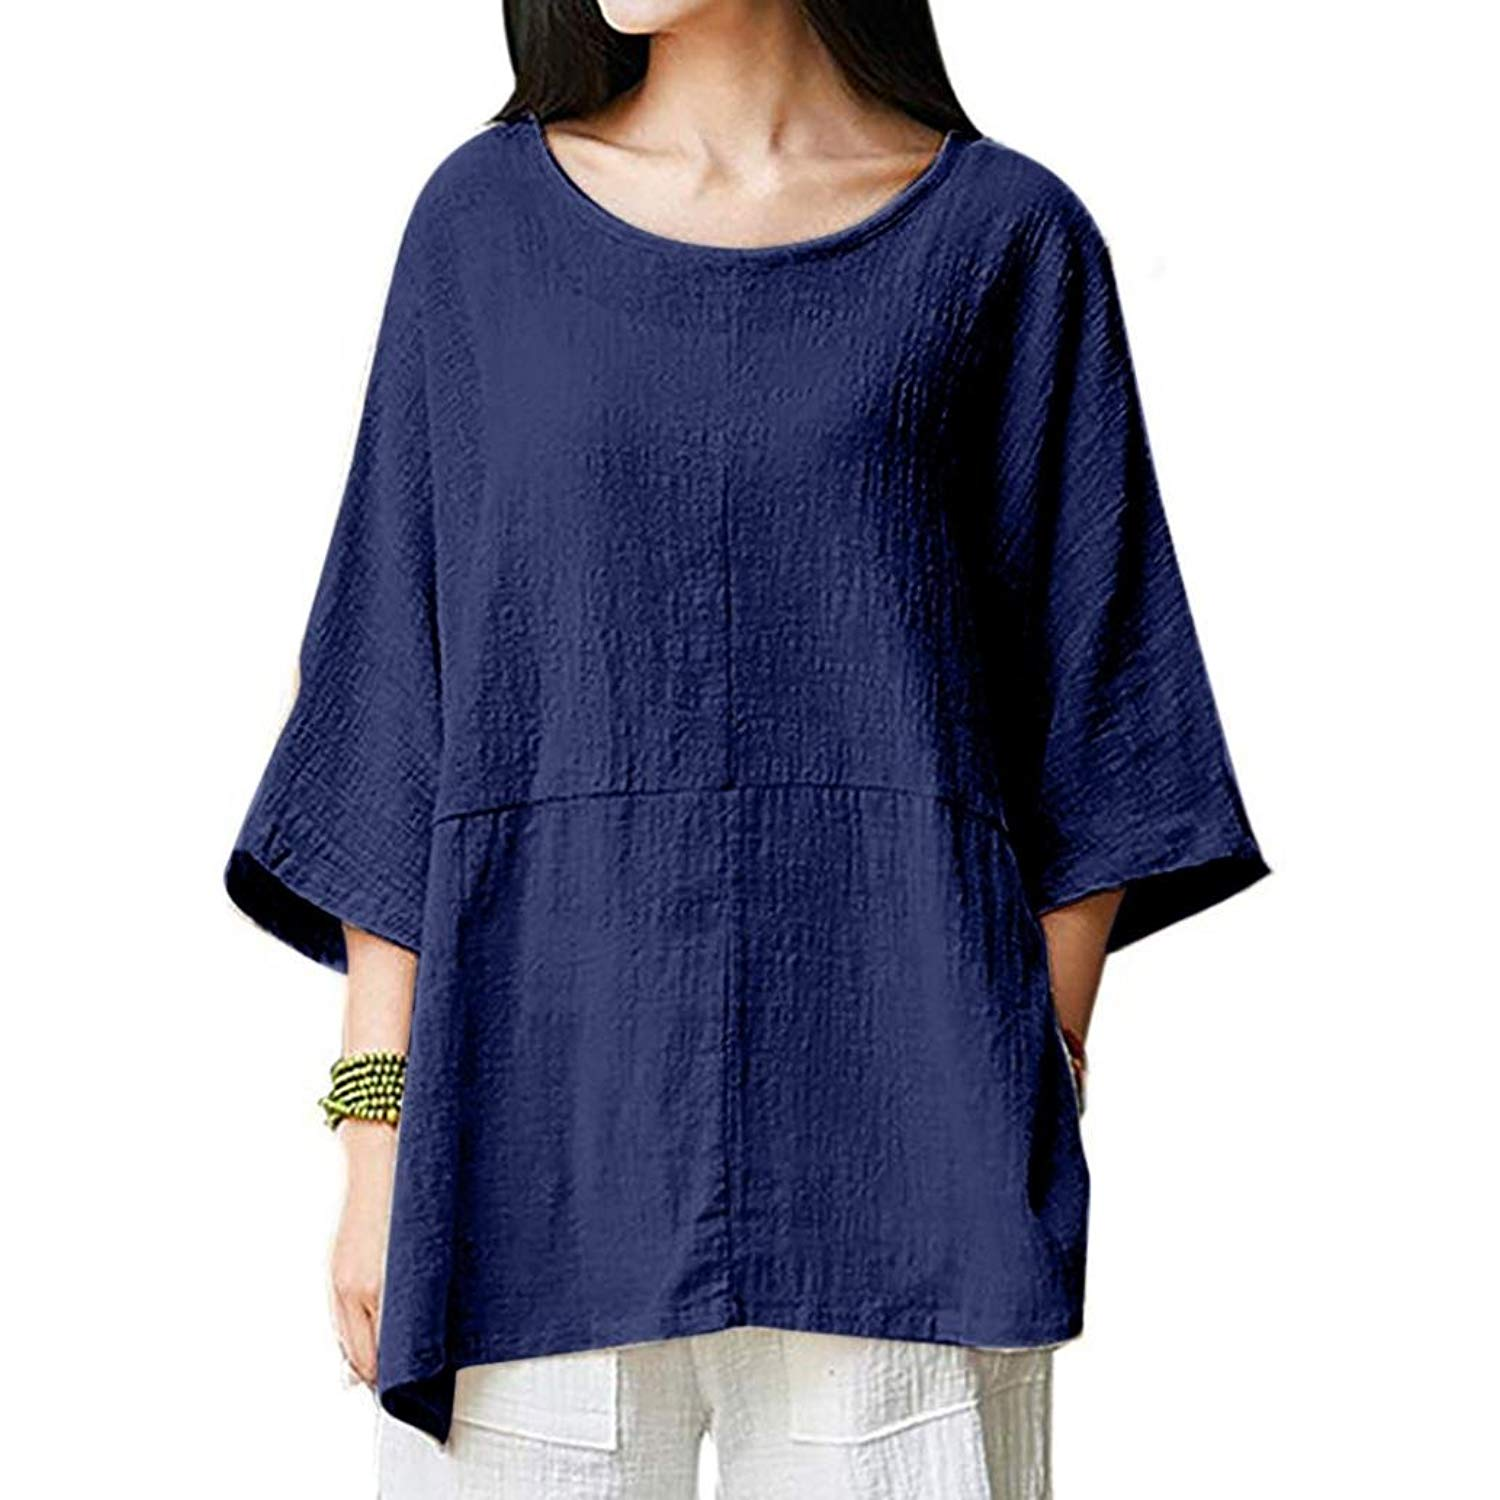 BCDshop Women Casual Loose Vintage Cotton Linen Tops Shirts Blouse Tunic 3/4 Sleeve